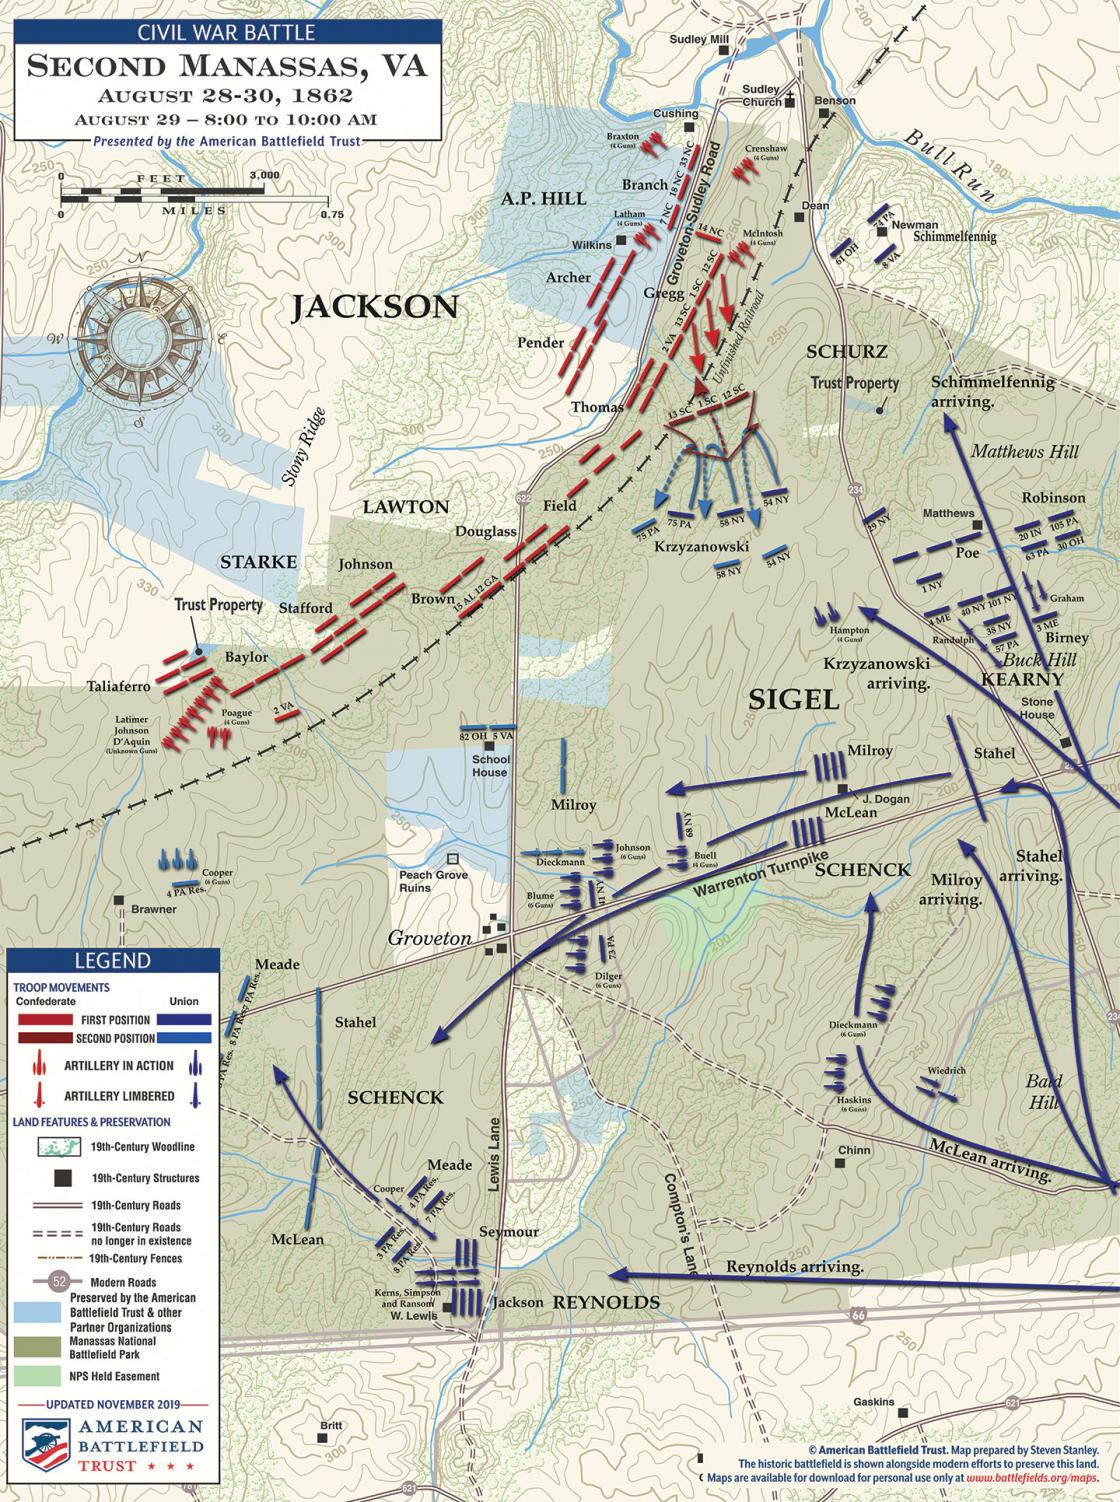 Second Manassas - The Unfinished Railroad - August 29, 1862 - 8am to 10am (November 2019)